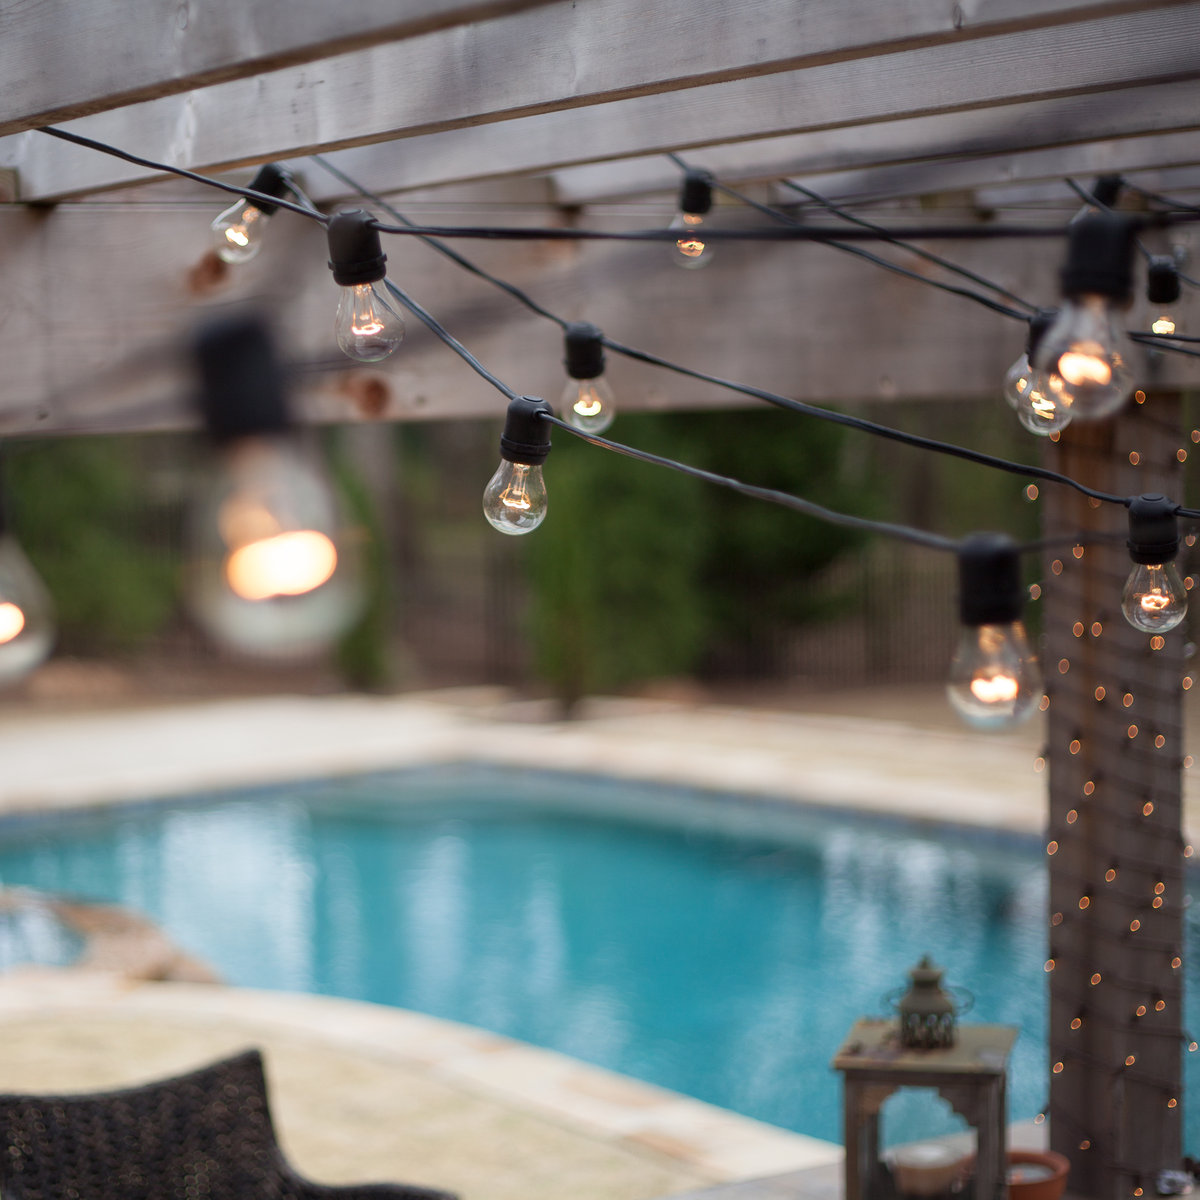 Outdoor Lights On Patio: 10 Commercial Outdoor Patio String Lights Ideas To Light